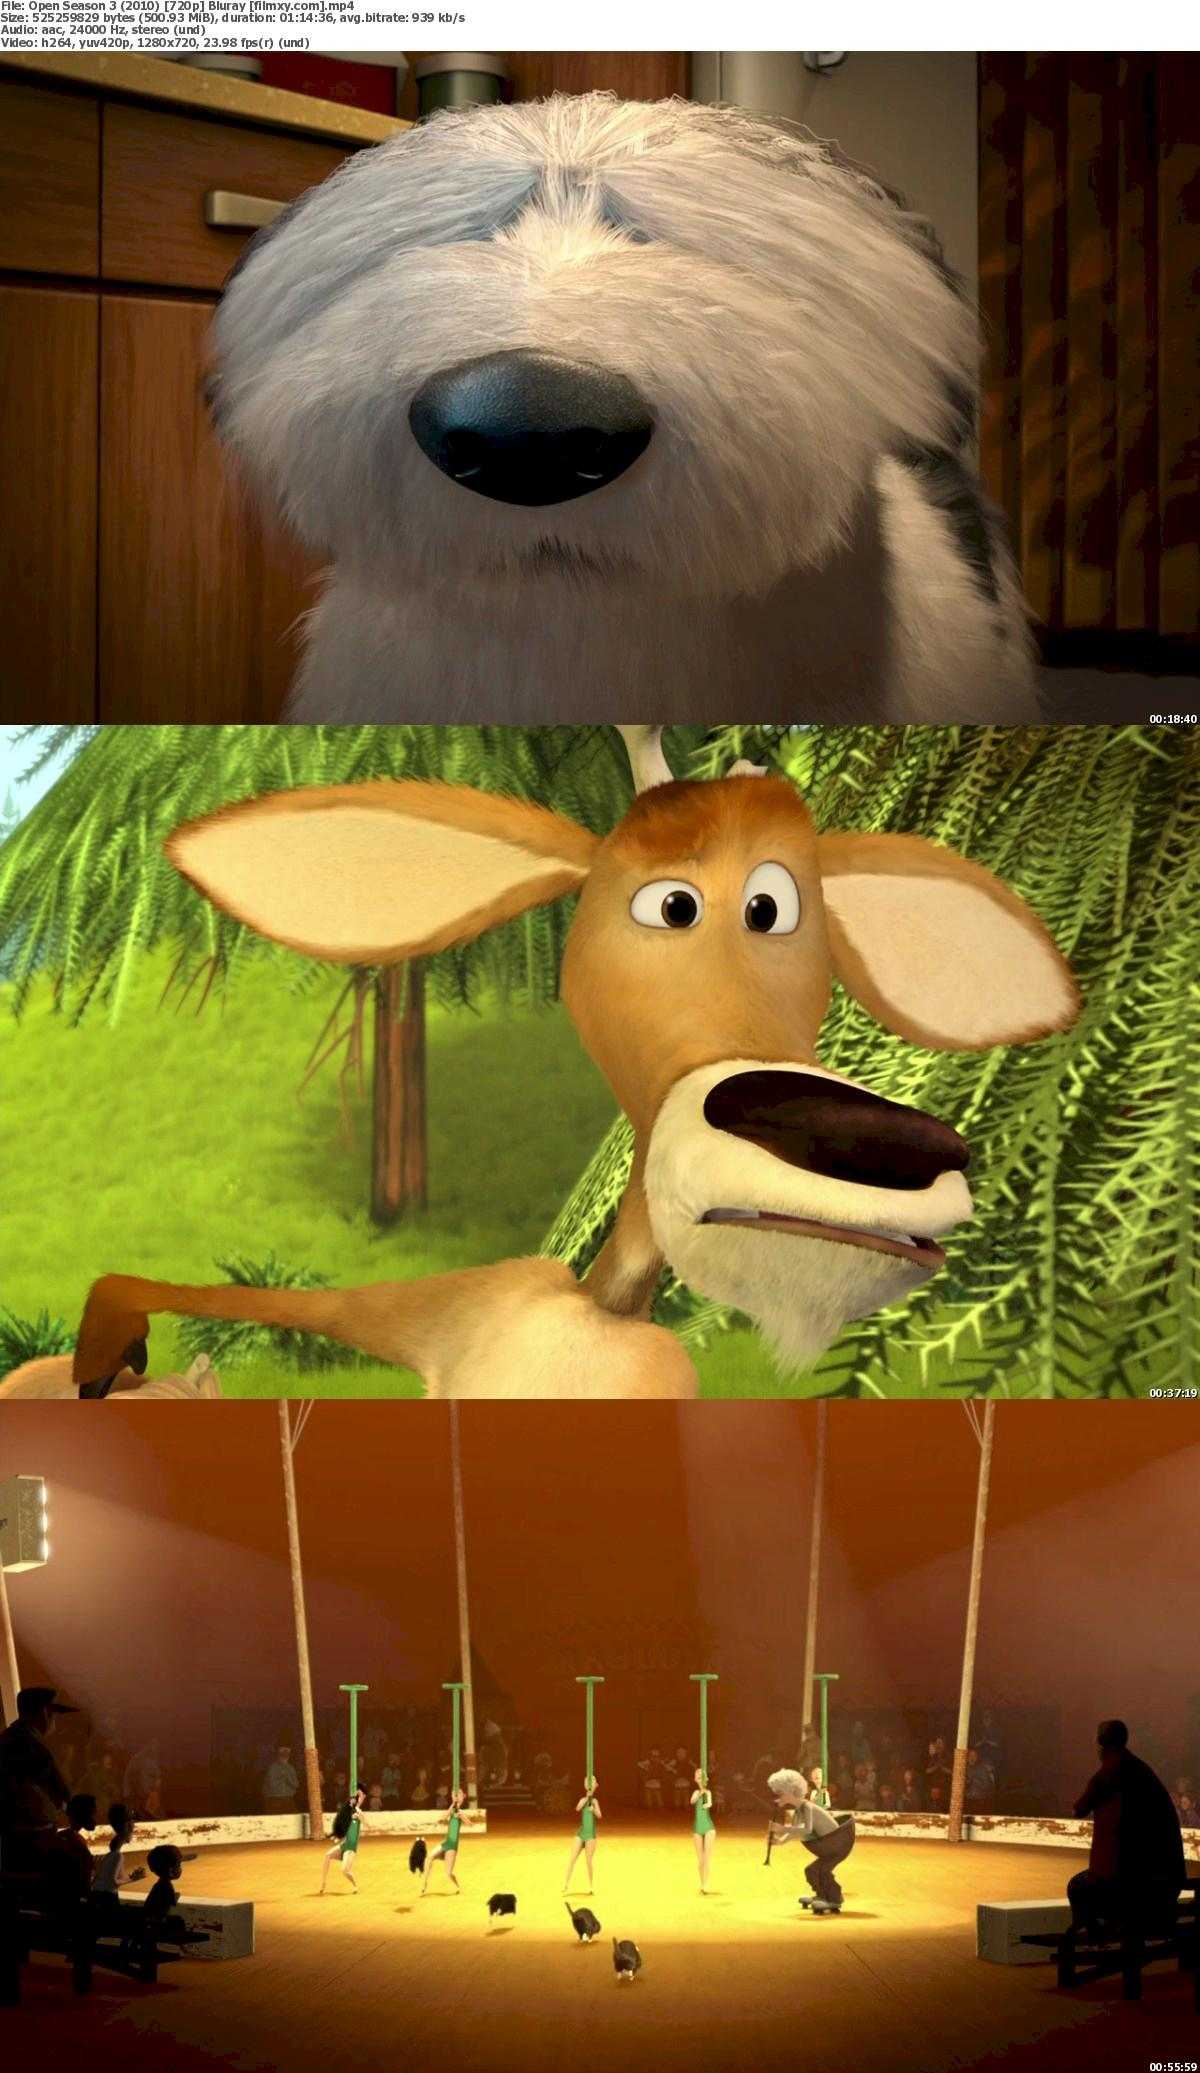 Open Season 3 (2010) 720p Bluray Free Download 720p Screenshot